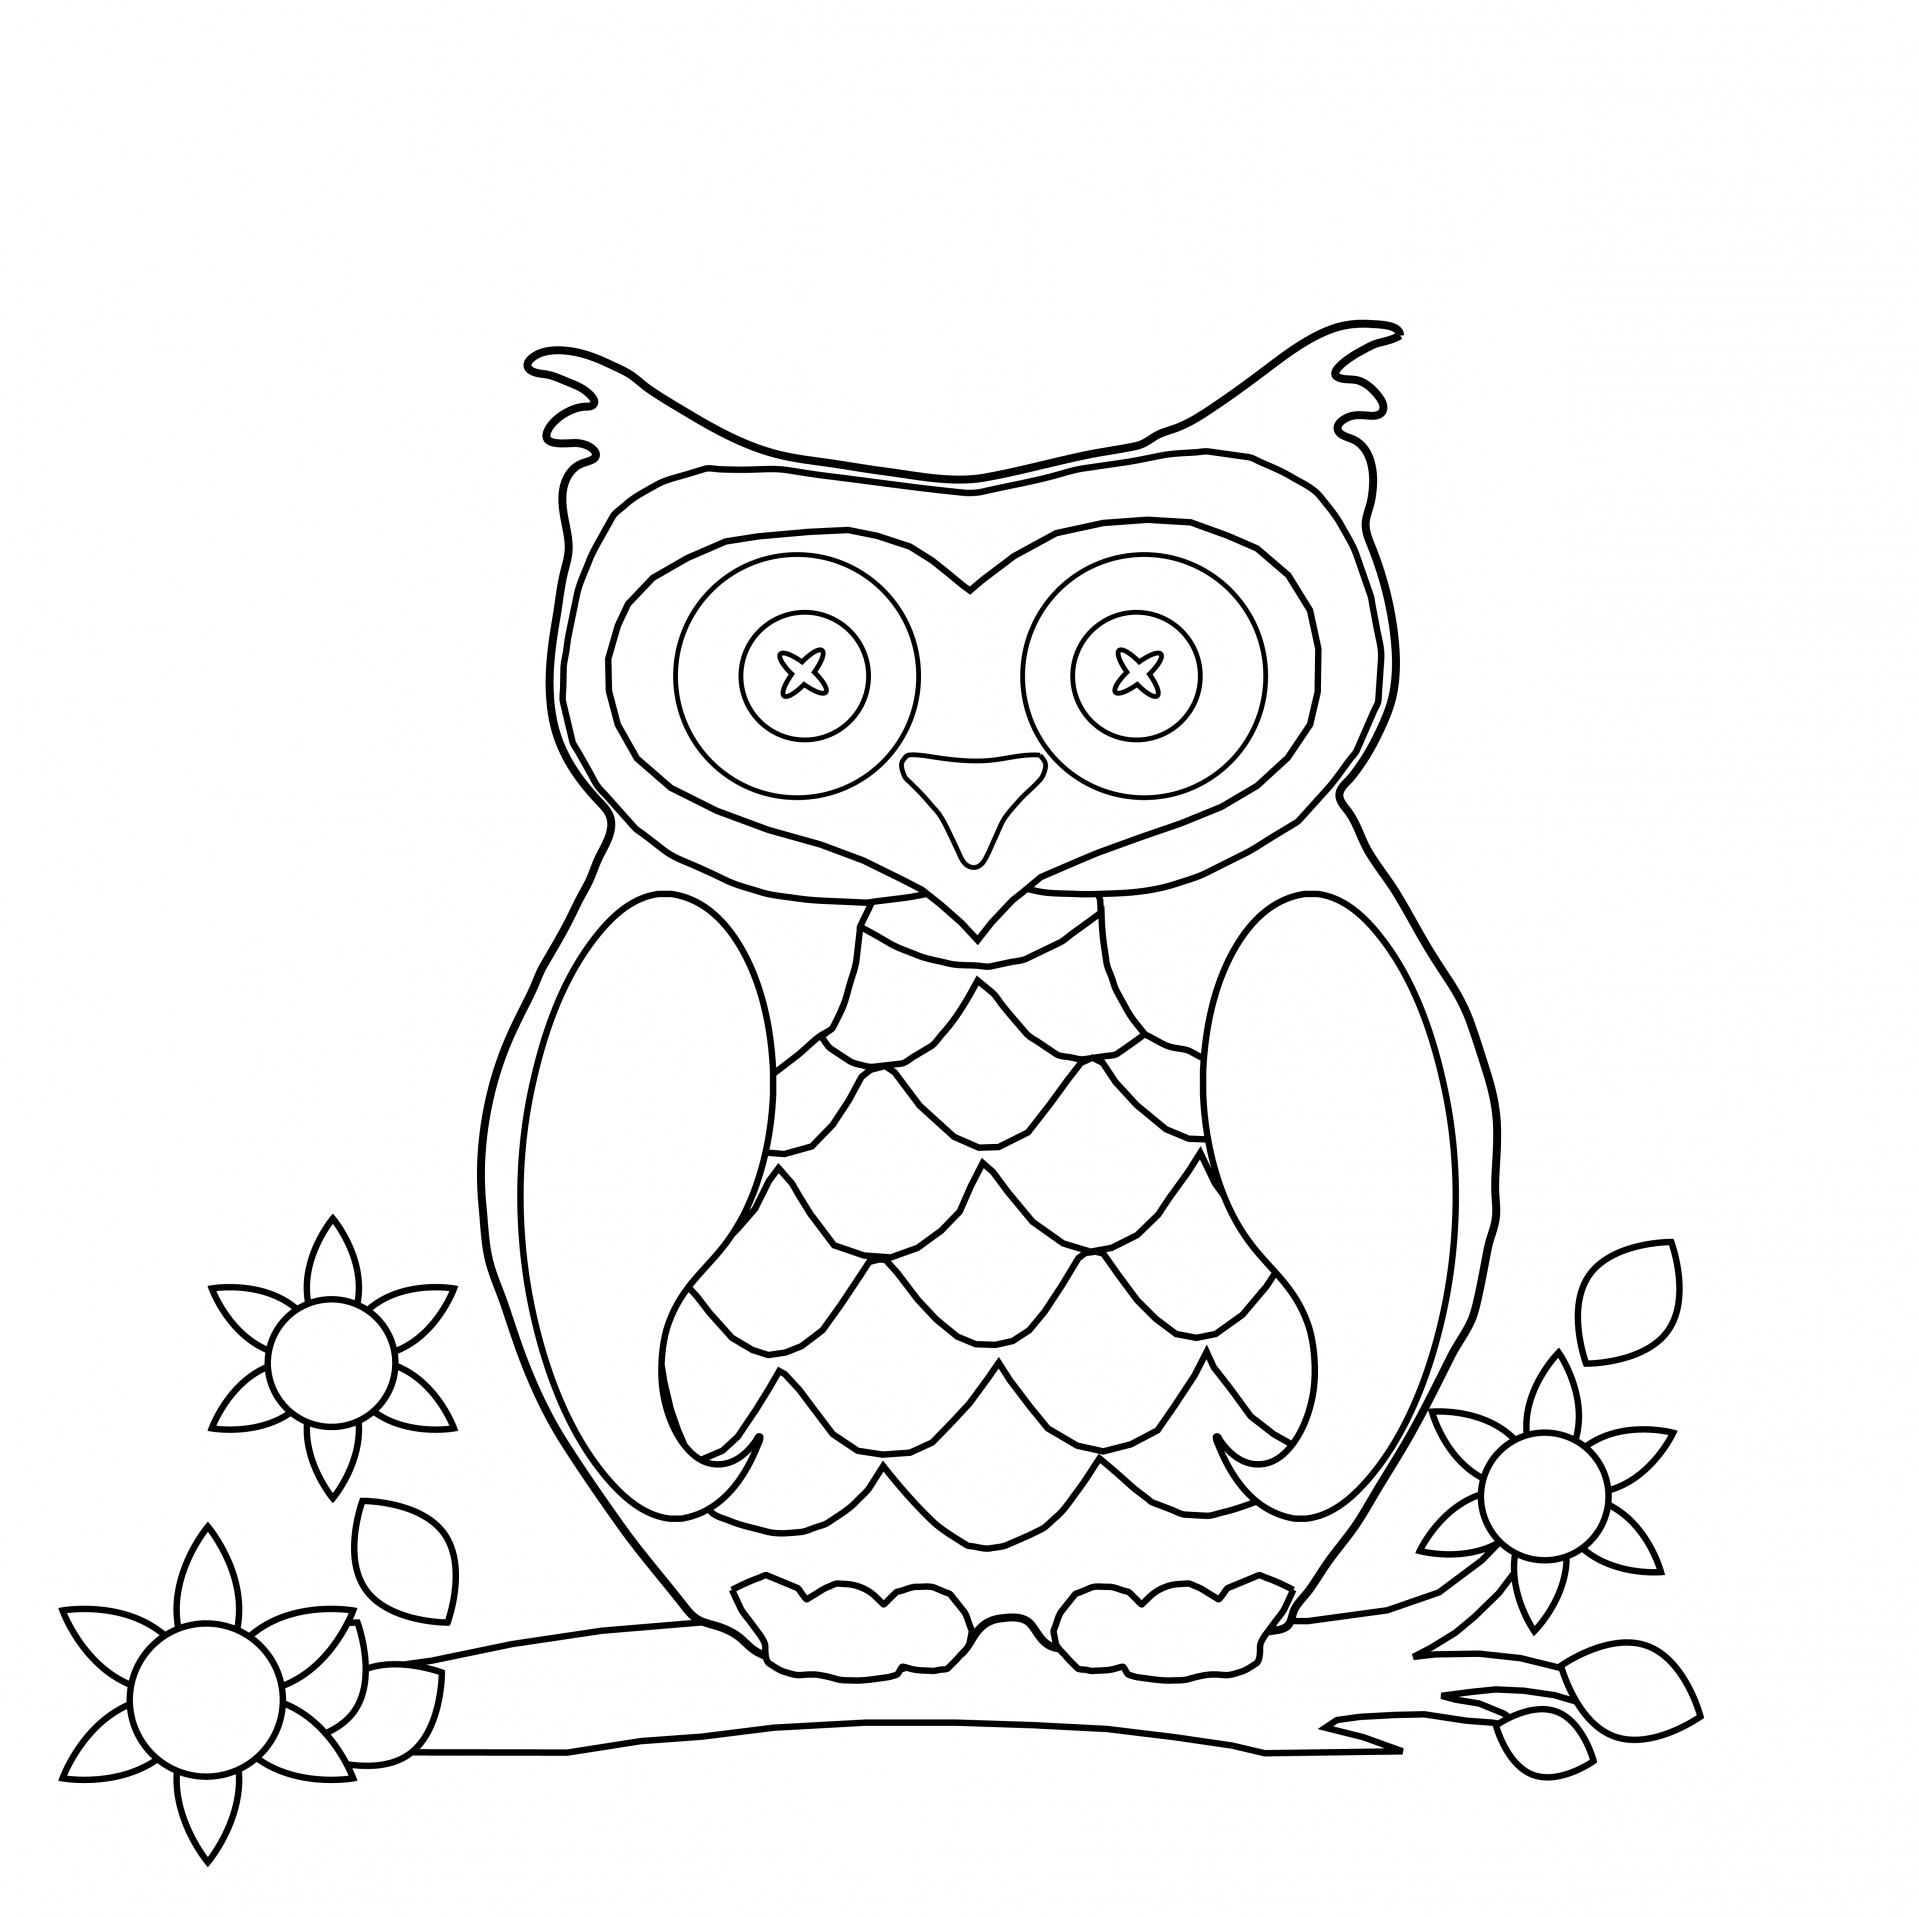 coloring picture printable free printable tangled coloring pages for kids coloring printable picture